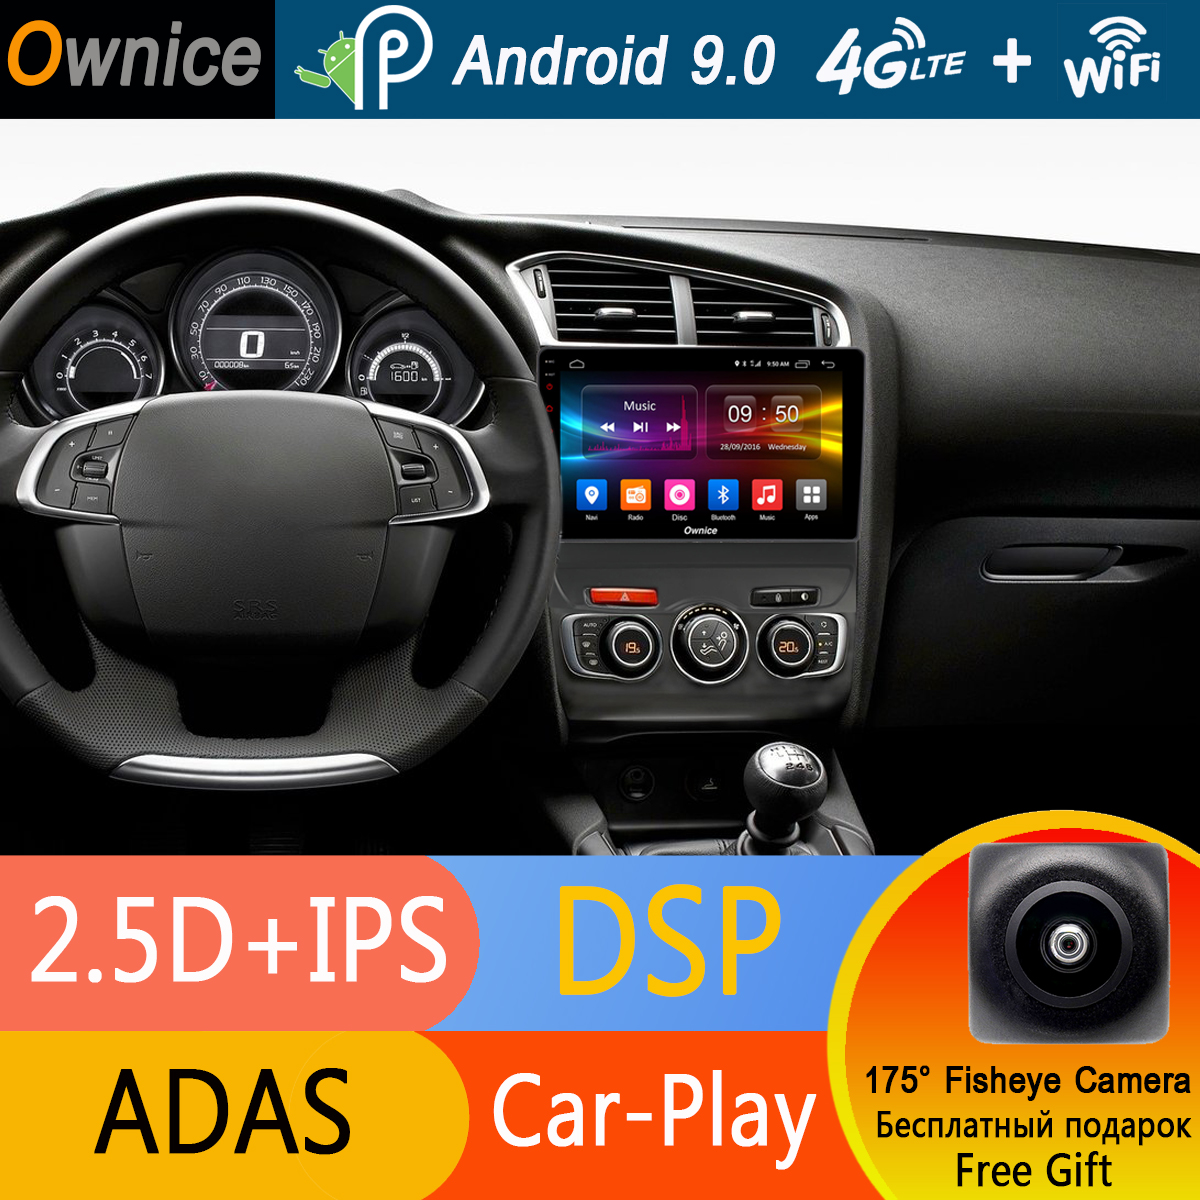 Android Dvd-Player Carplay DS4 C4L Radio 4g Octa-Core Citroen 32G for C4l/ds4 GPS Navi